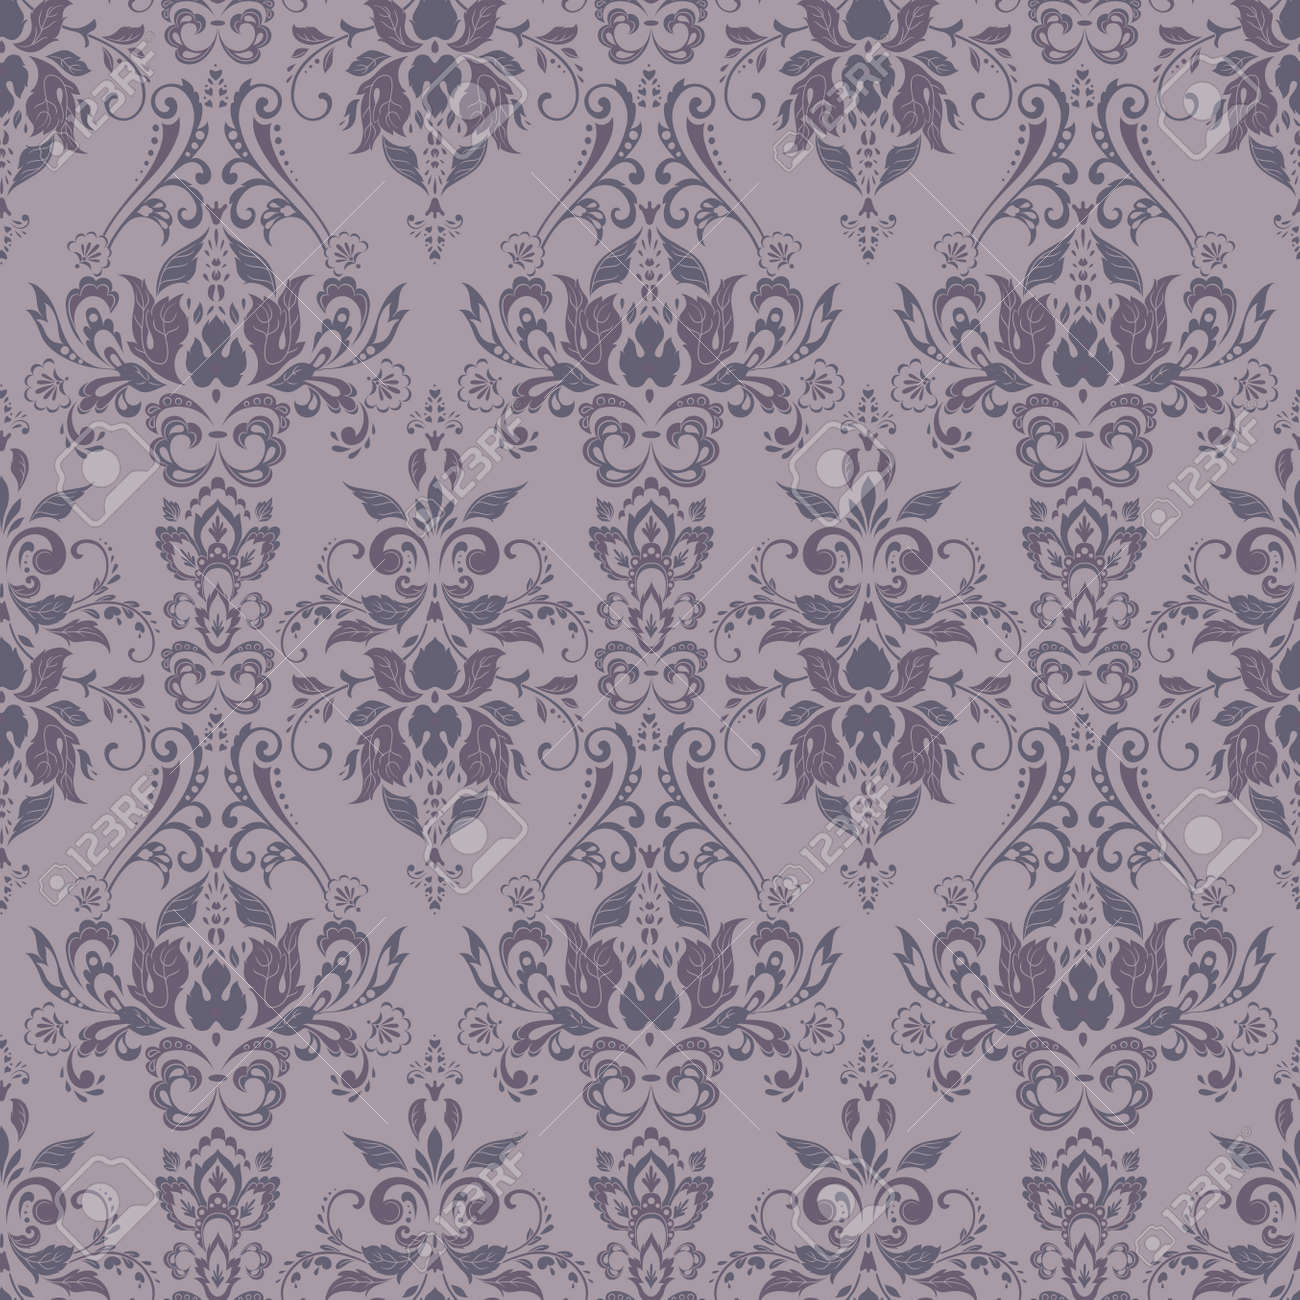 Vector Baroque floral pattern. classic floral ornament. vintage texture for wallpapers, textile, fabric - 125792727